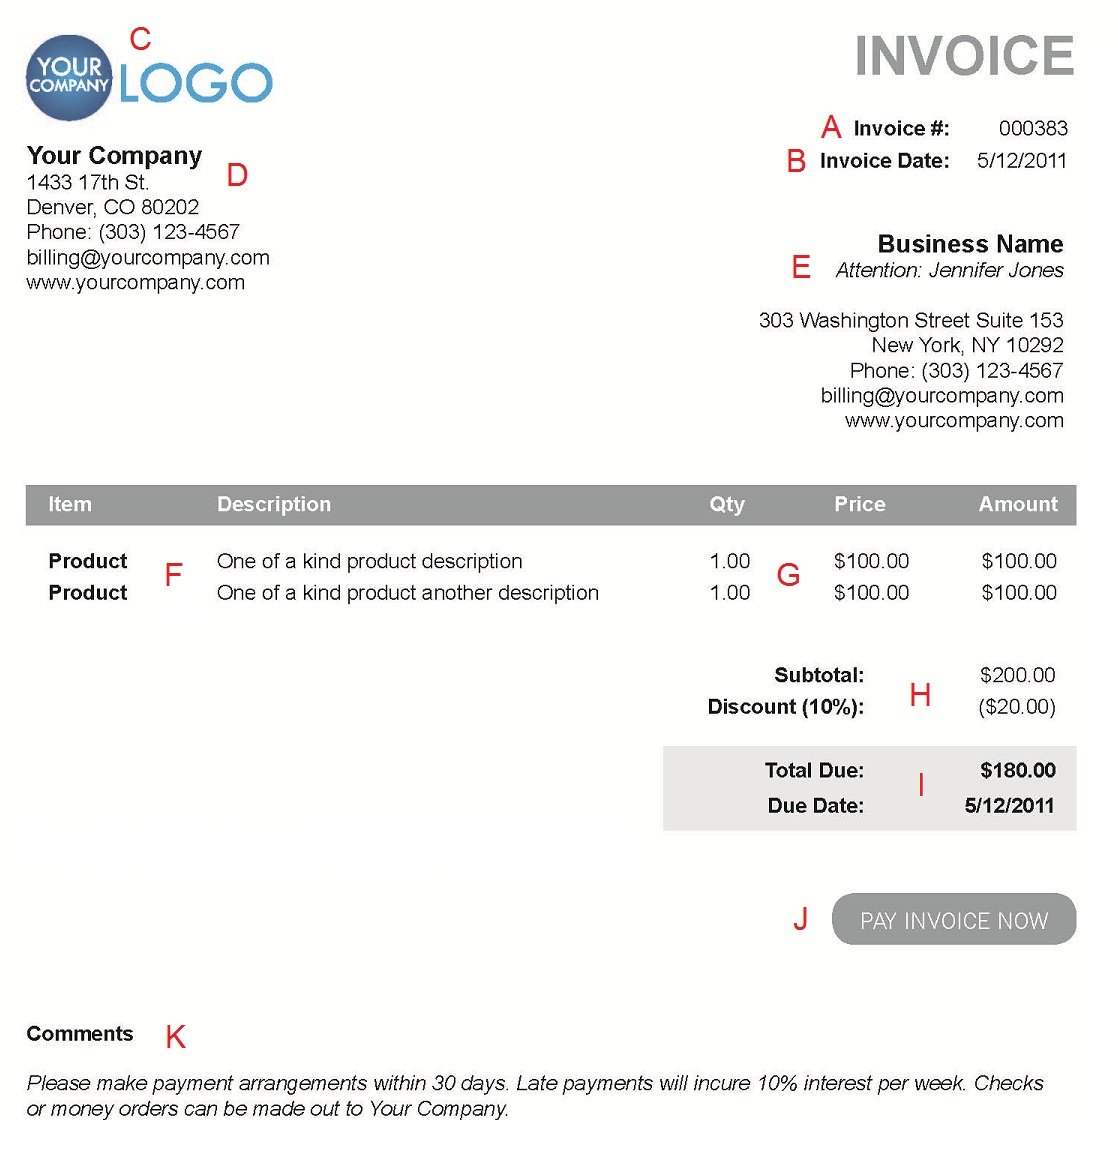 Ebitus  Gorgeous The  Different Sections Of An Electronic Payment Invoice With Exquisite A  With Endearing Requirements Of A Vat Invoice Also Trucking Invoice Template In Addition Online Invoicing System And Free Invoice Template For Word As Well As Invoice App For Ipad Additionally Quickbooks Export Invoice To Excel From Paysimplecom With Ebitus  Exquisite The  Different Sections Of An Electronic Payment Invoice With Endearing A  And Gorgeous Requirements Of A Vat Invoice Also Trucking Invoice Template In Addition Online Invoicing System From Paysimplecom